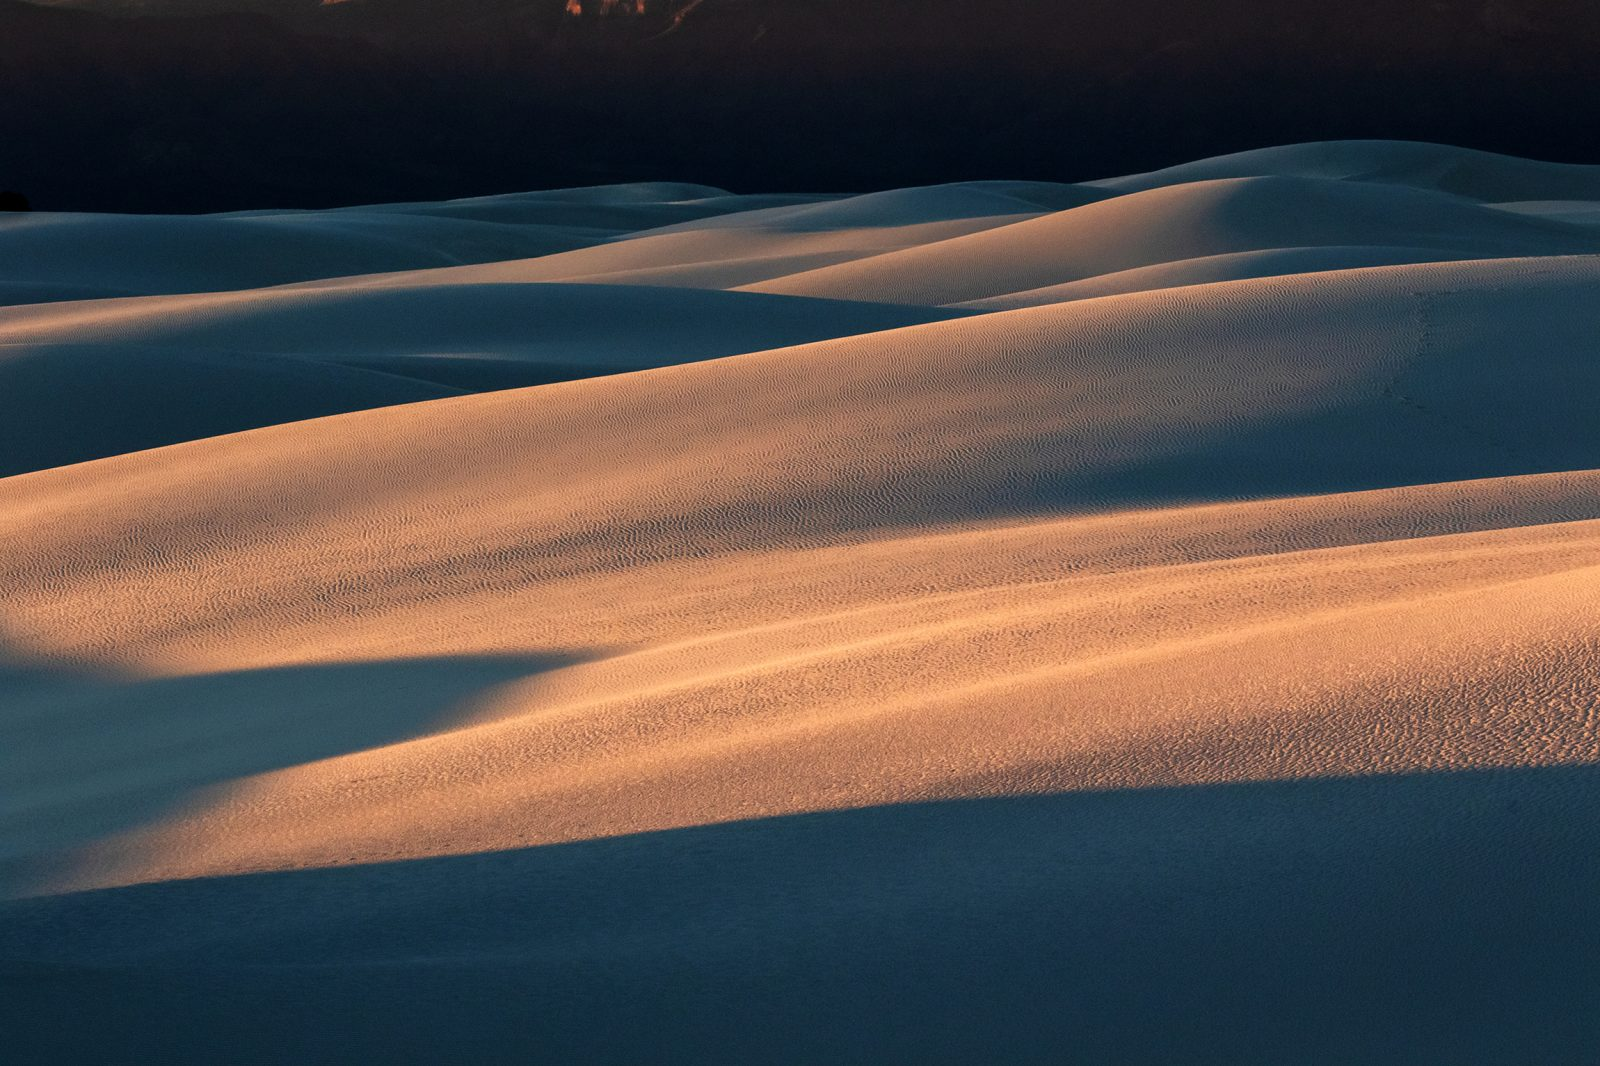 The art of light created by the dunes